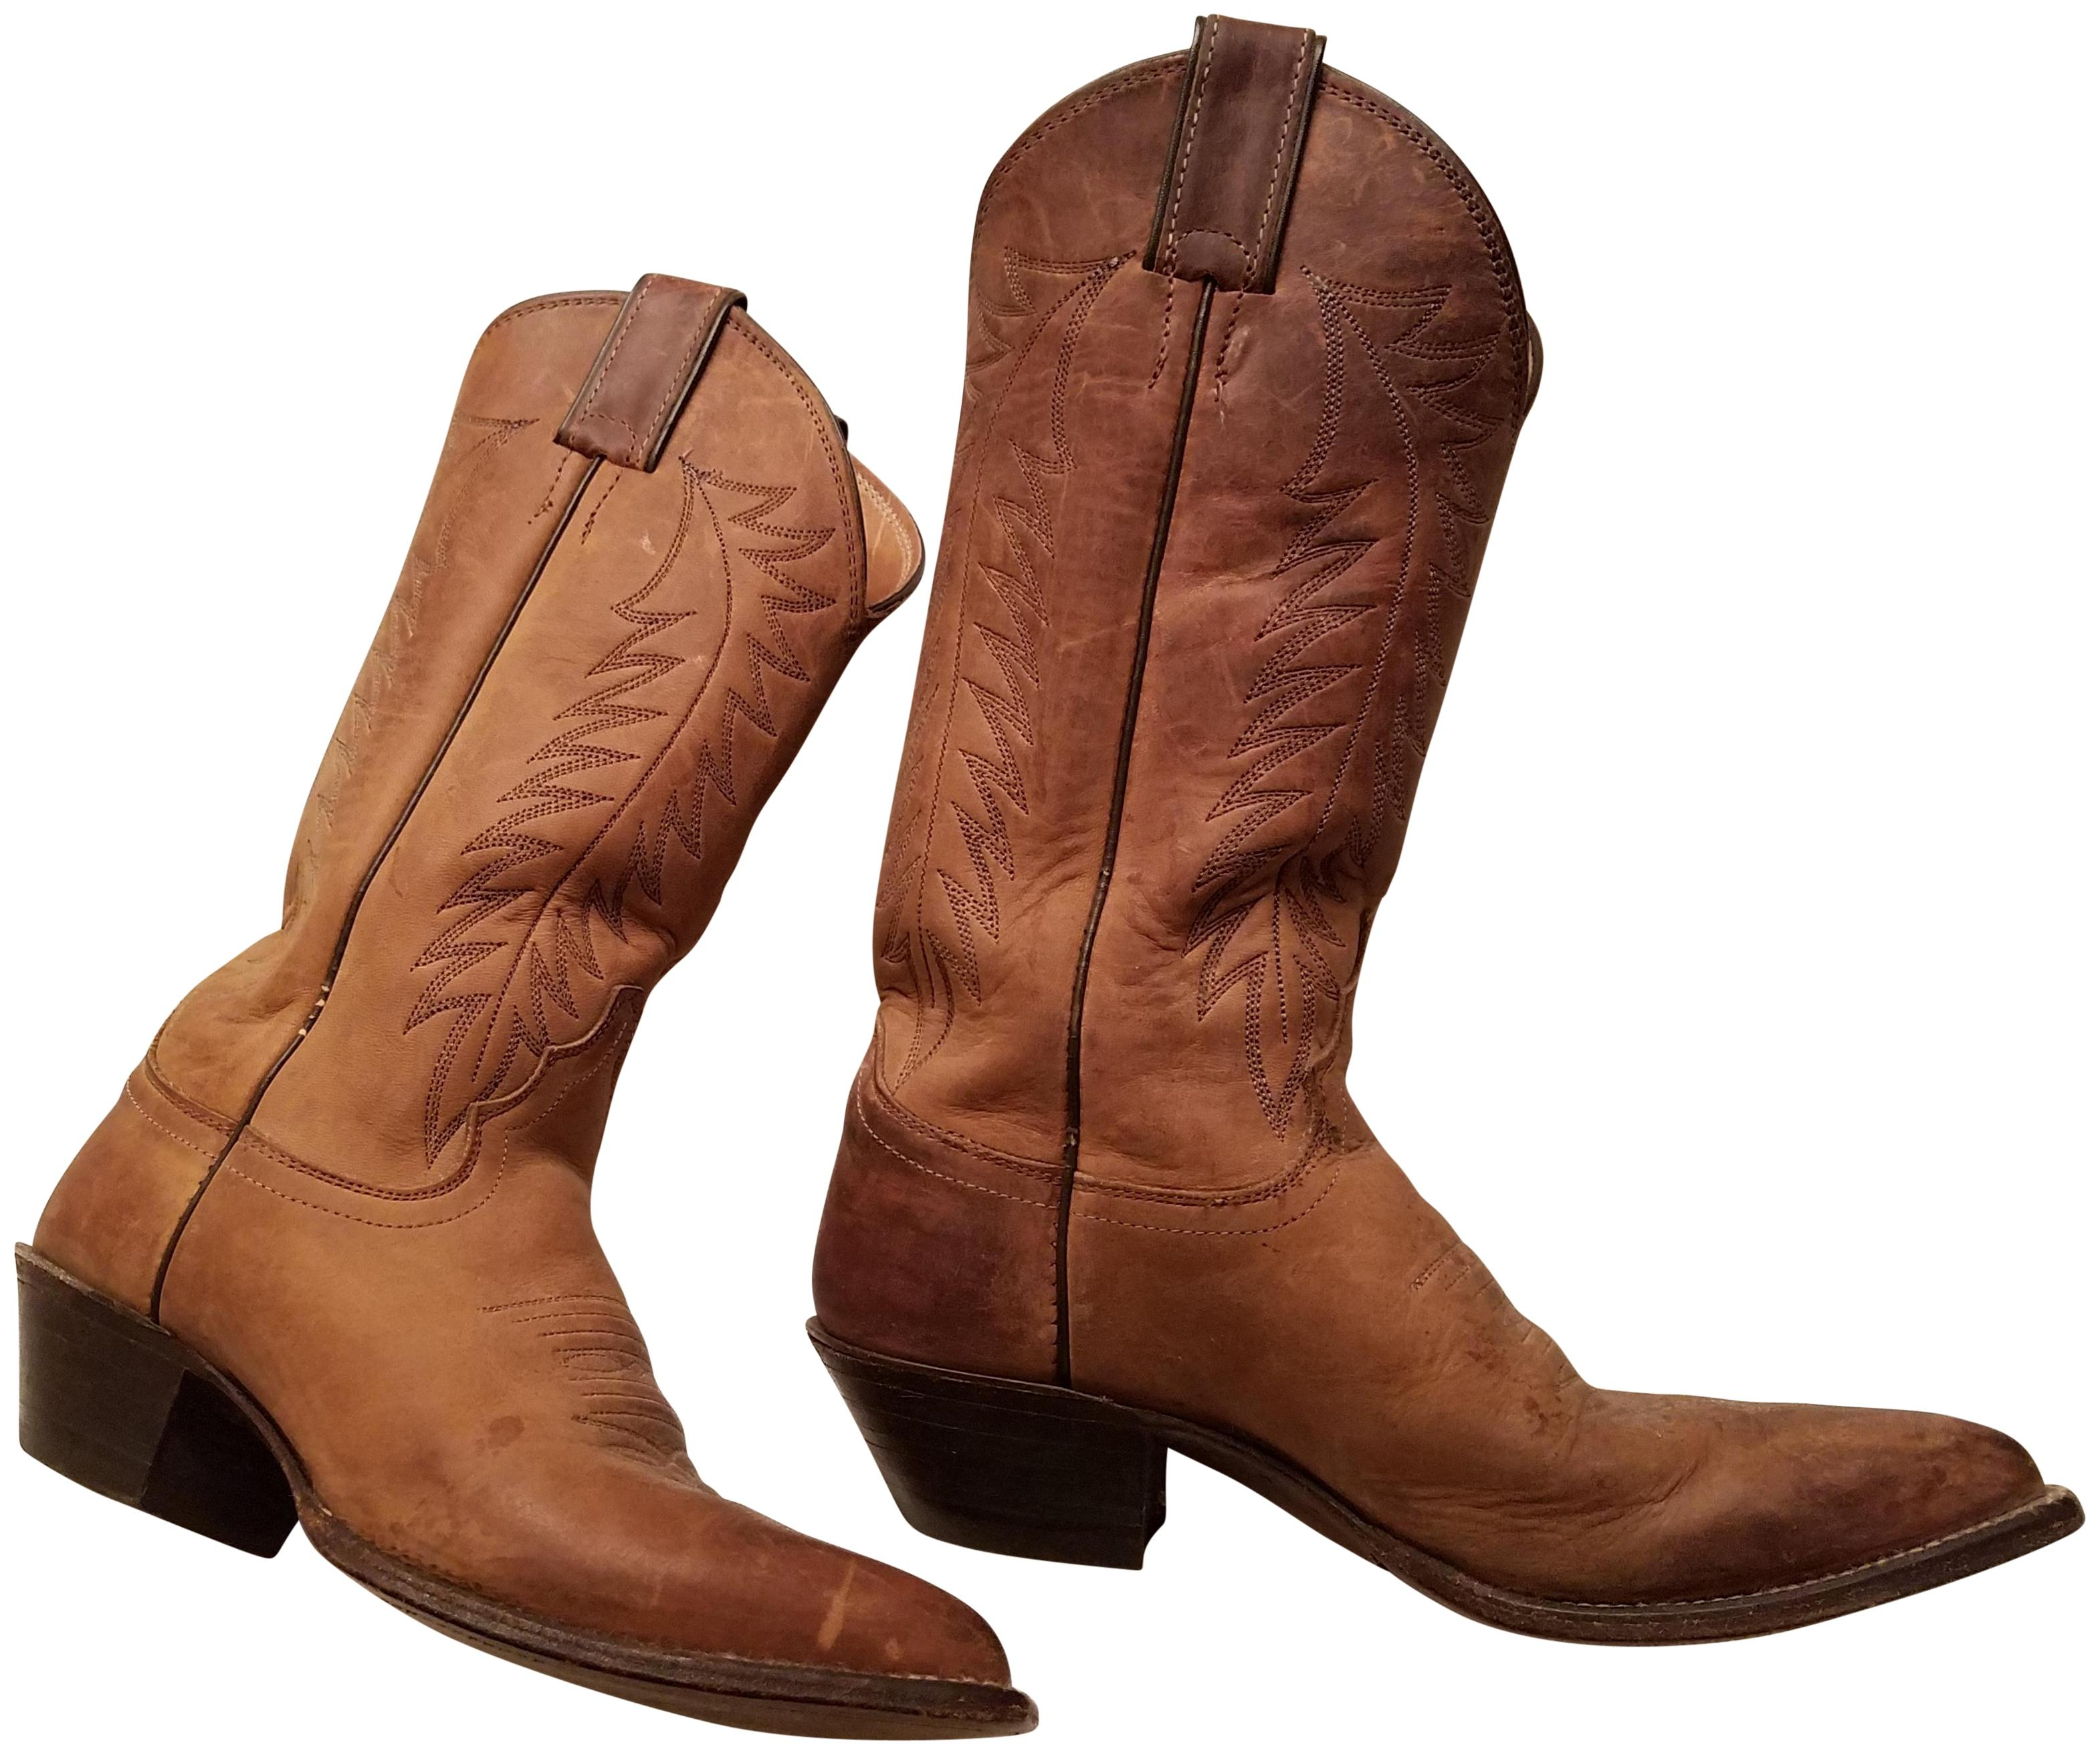 Justin Boots Brown Distressed Tall Cowboy BootsBooties